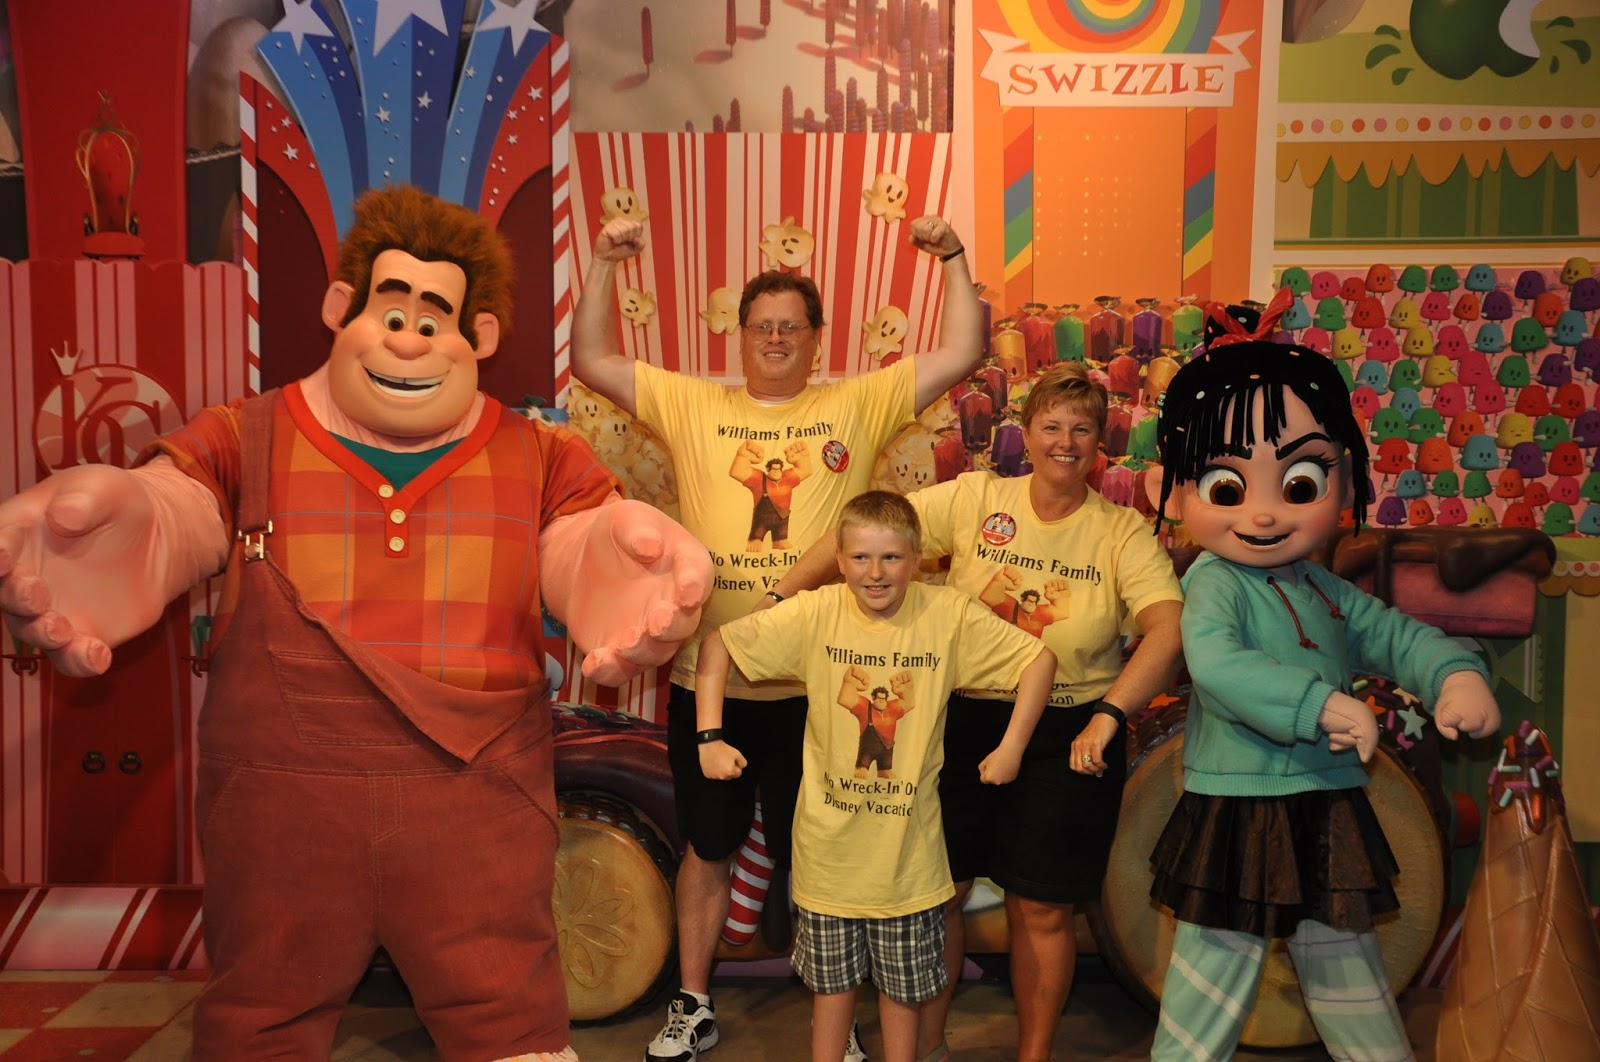 Williams family do you wear shirts to match the characters you meet longer answer there is much more planning and thinking that goes on behind that magical picture of us meeting ralph wearing shirts with ralph on them kristyandbryce Choice Image